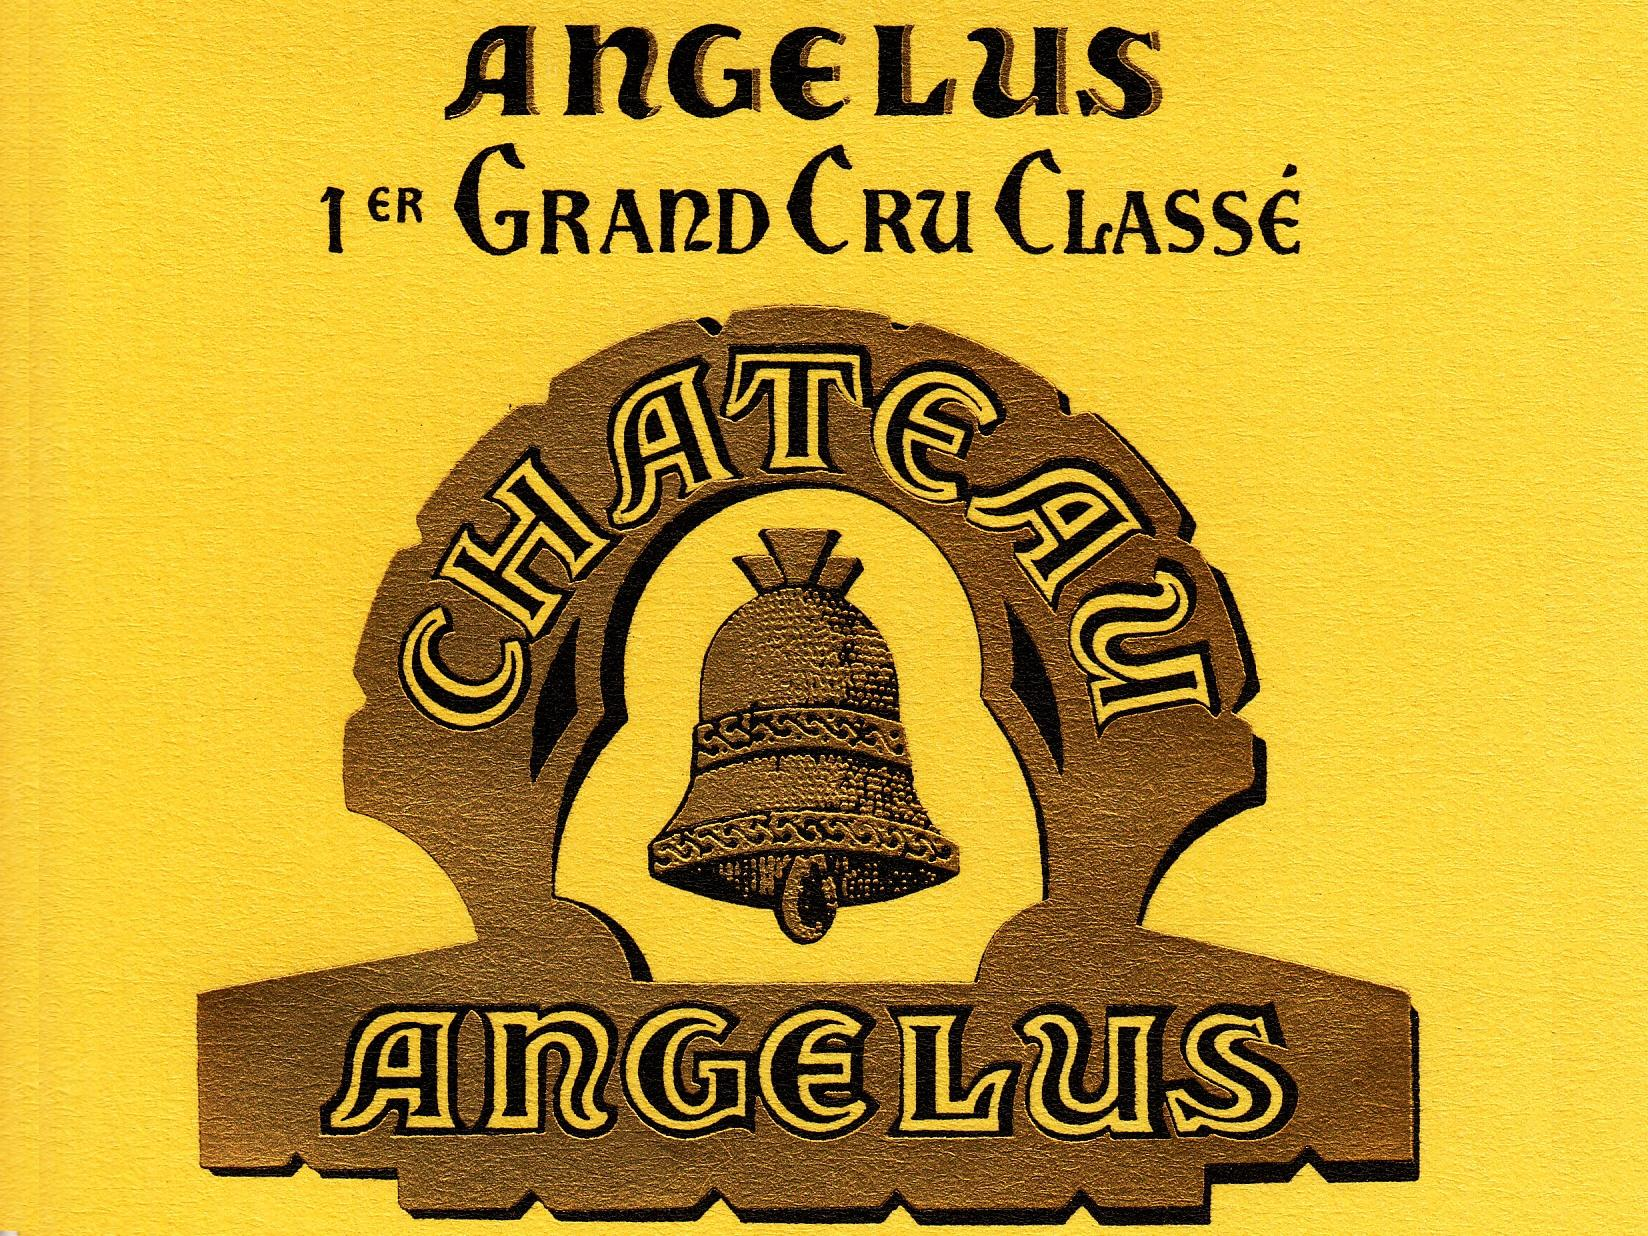 Chateau angelus topsy trading co ltd for Chateau angelus